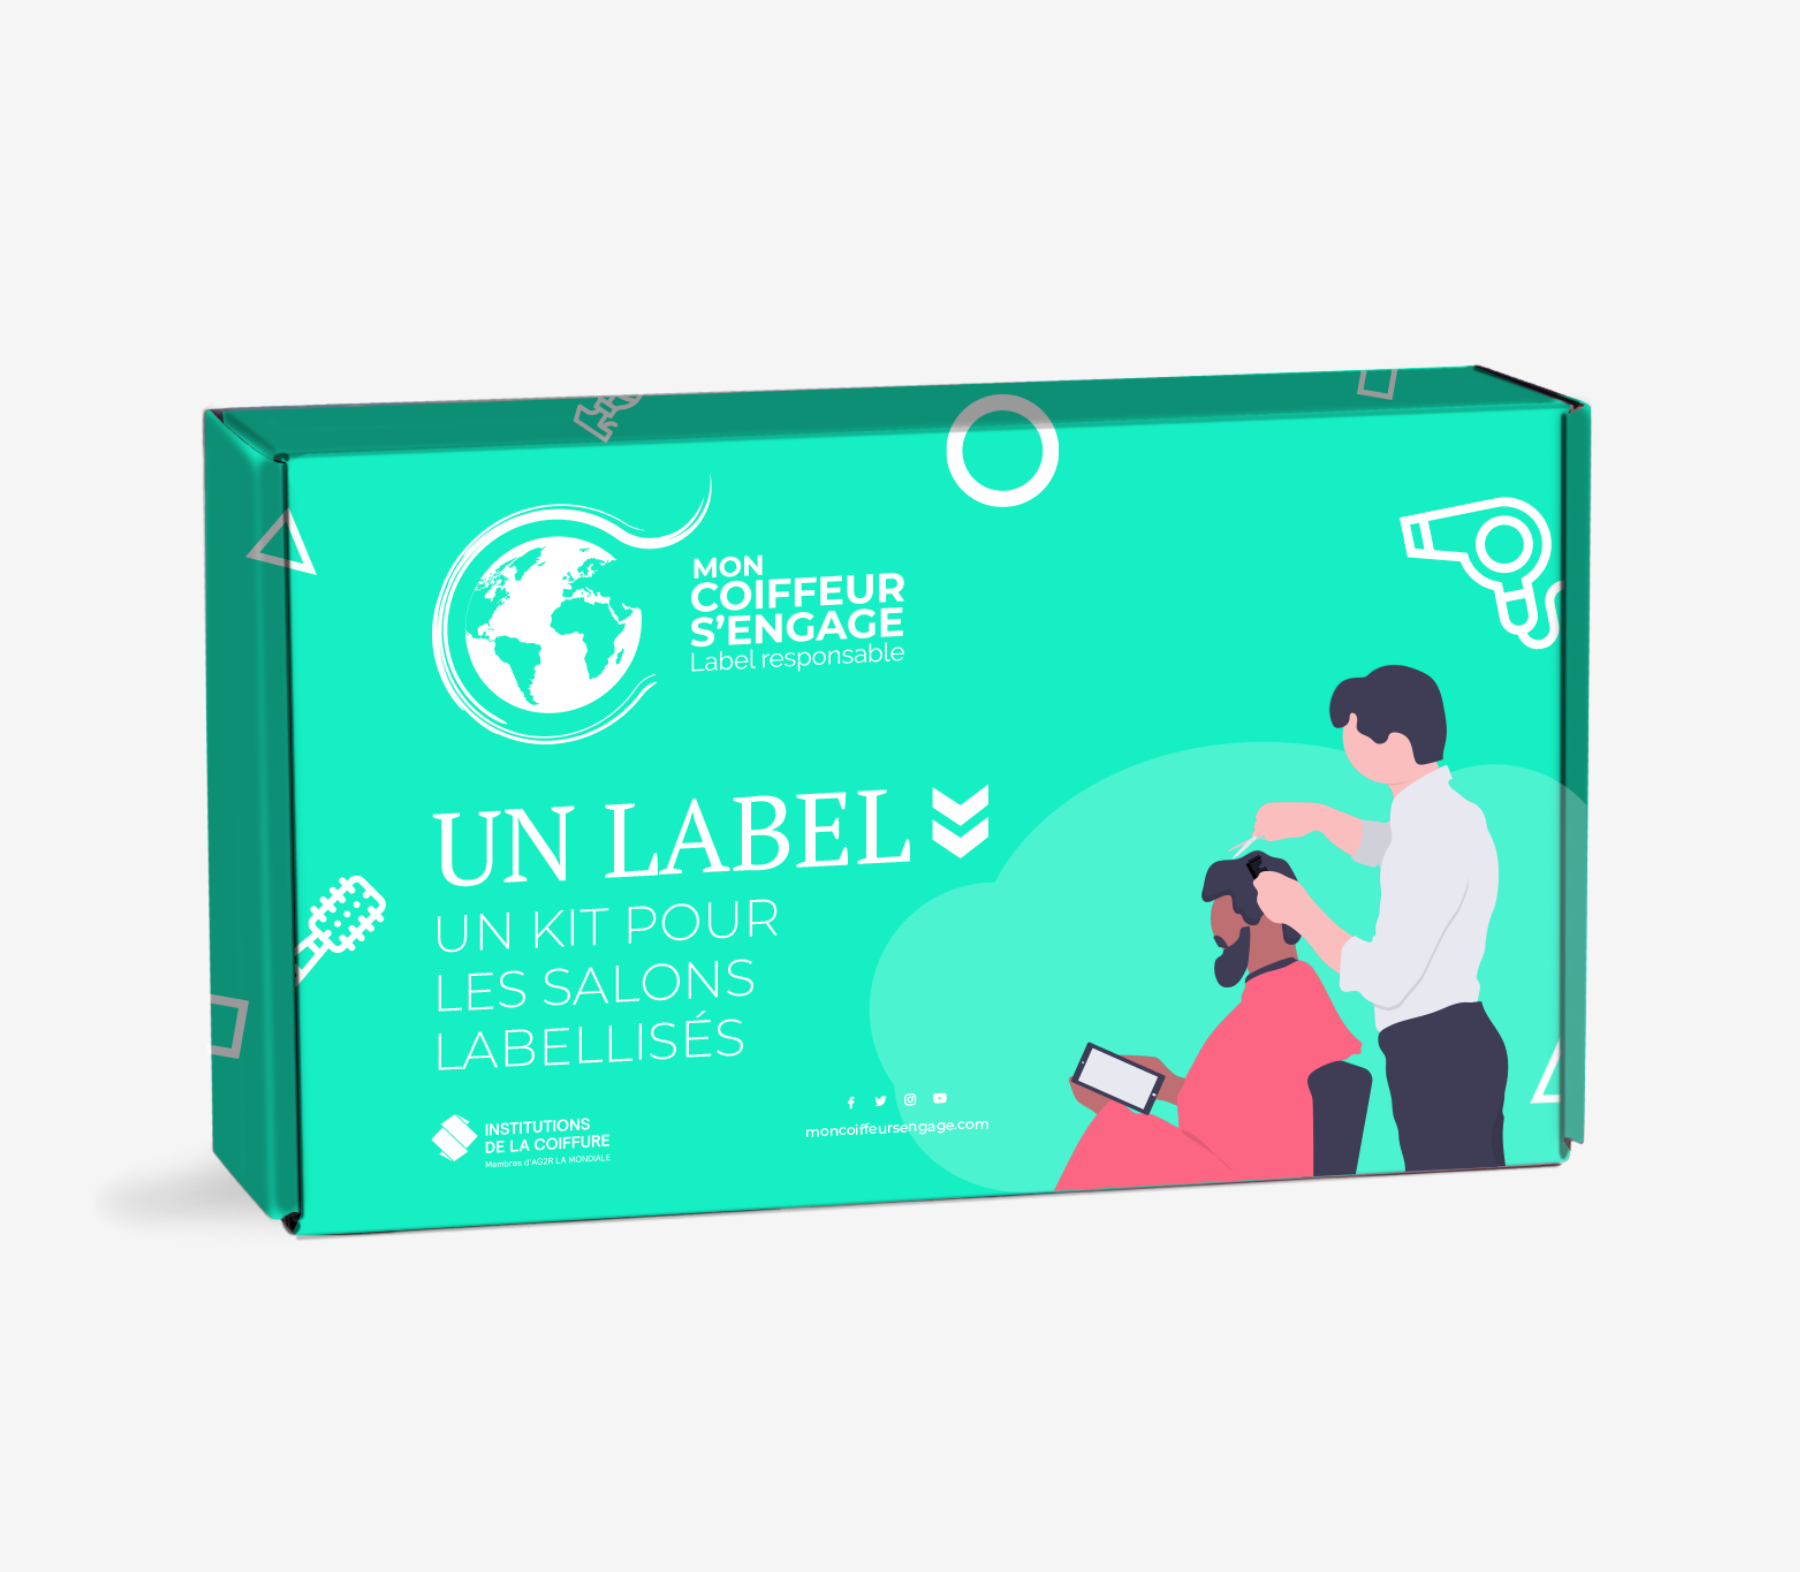 image-branding-label-responsables-kit-salons-mon-coiffeur-s-engage-agence-conseil-en-communication-Letb-synergie